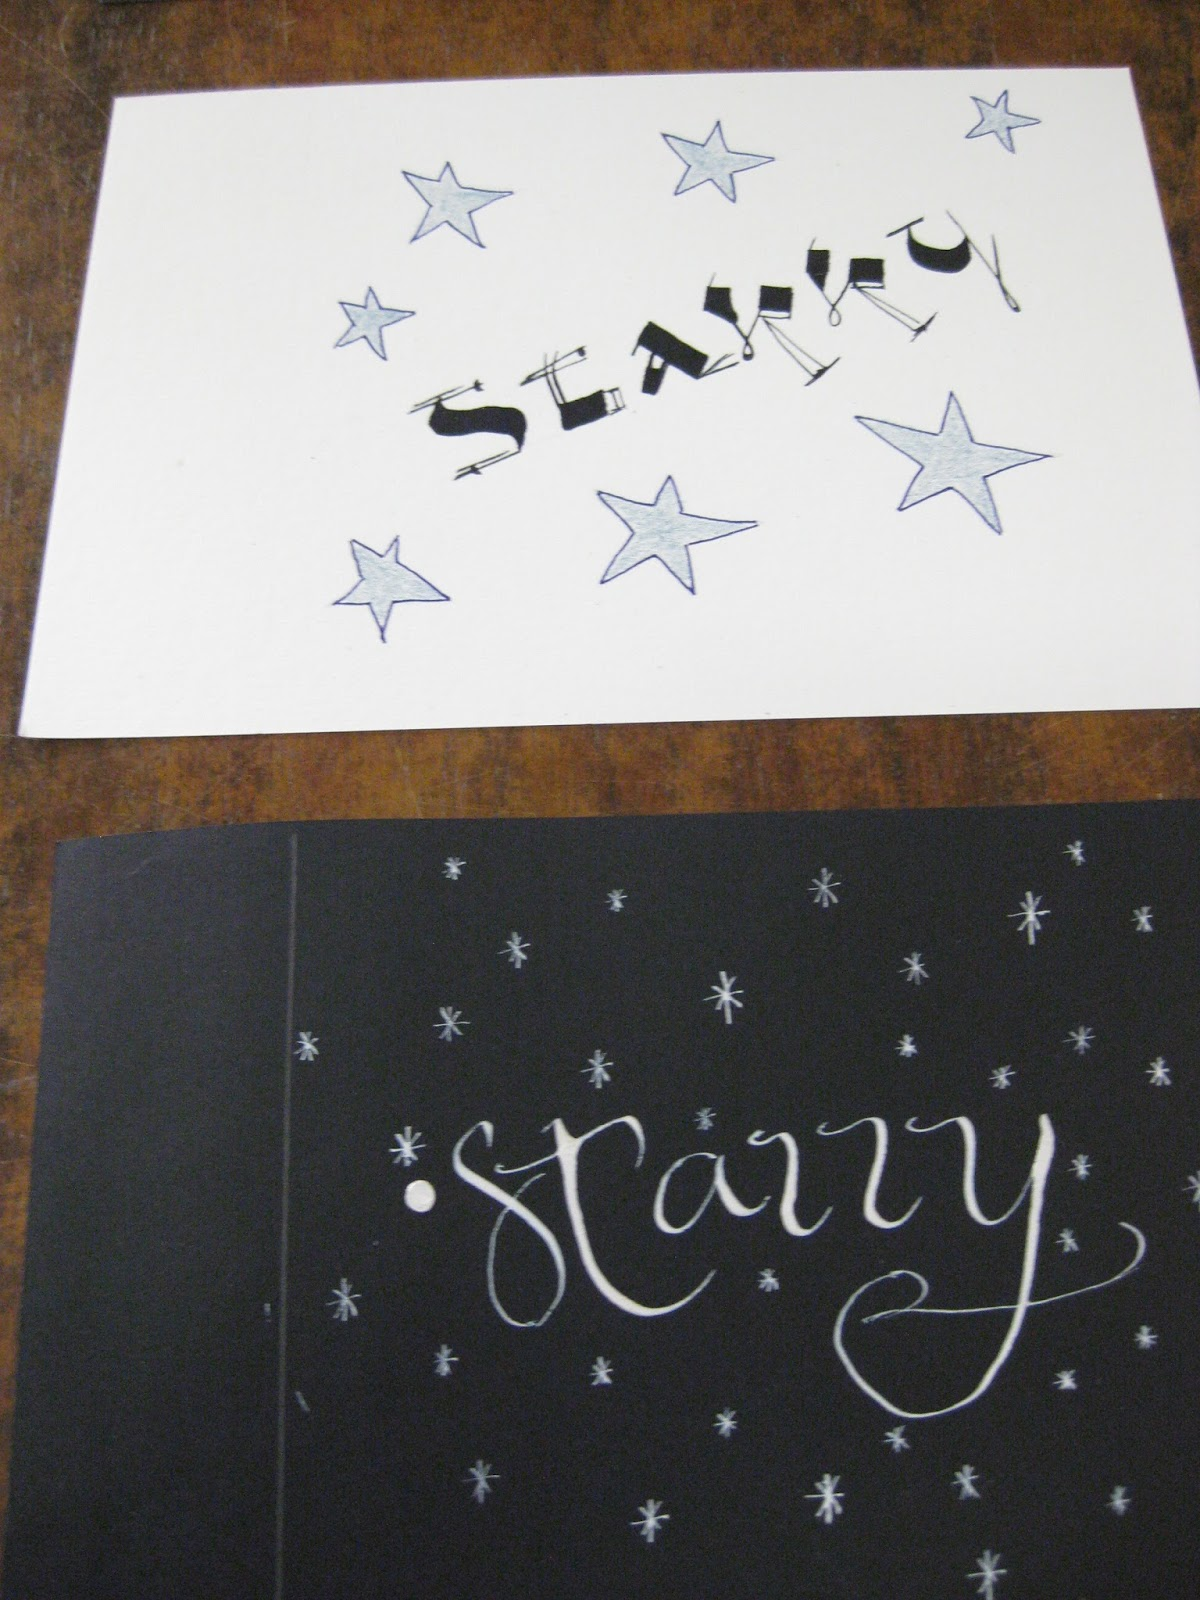 Calligraphy Southscribes Inc Starry The Word A Month